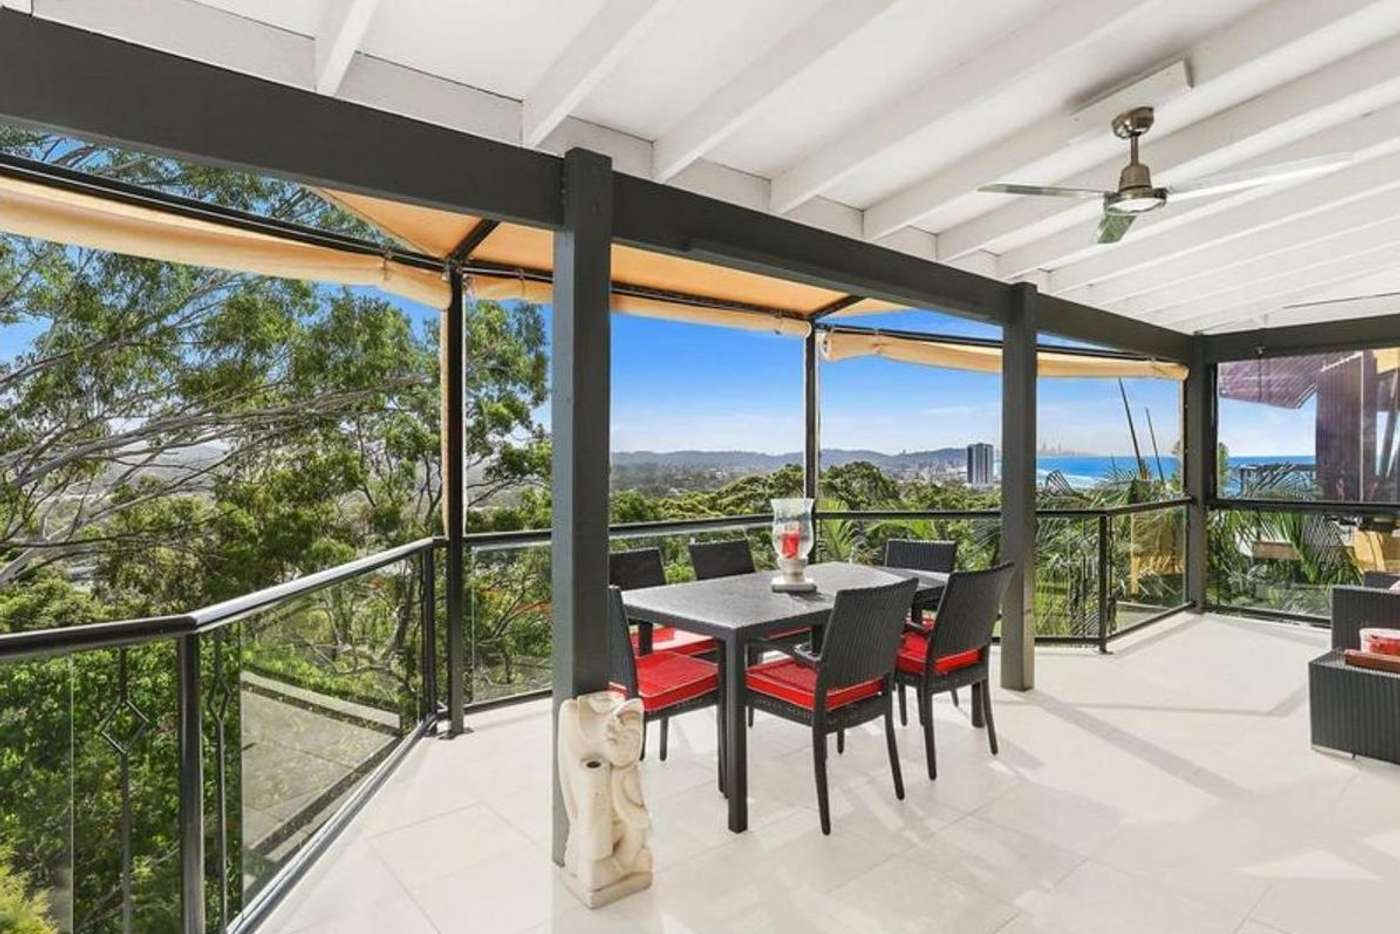 Main view of Homely house listing, 12 Pall Mall Avenue, Currumbin QLD 4223